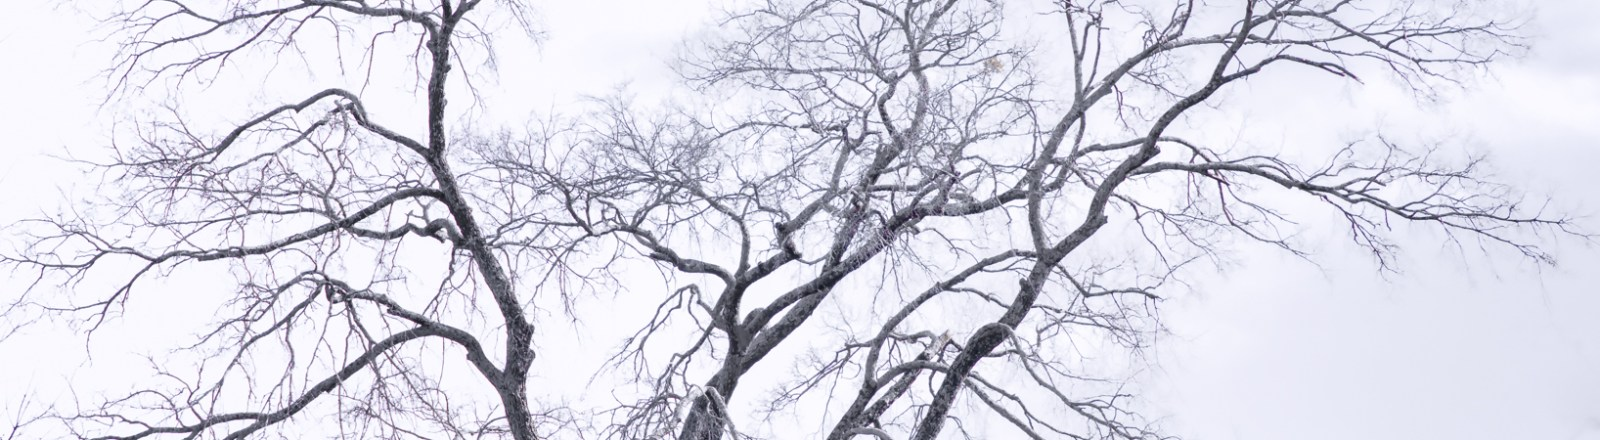 Winter Shapes and Forms (3 of 3)